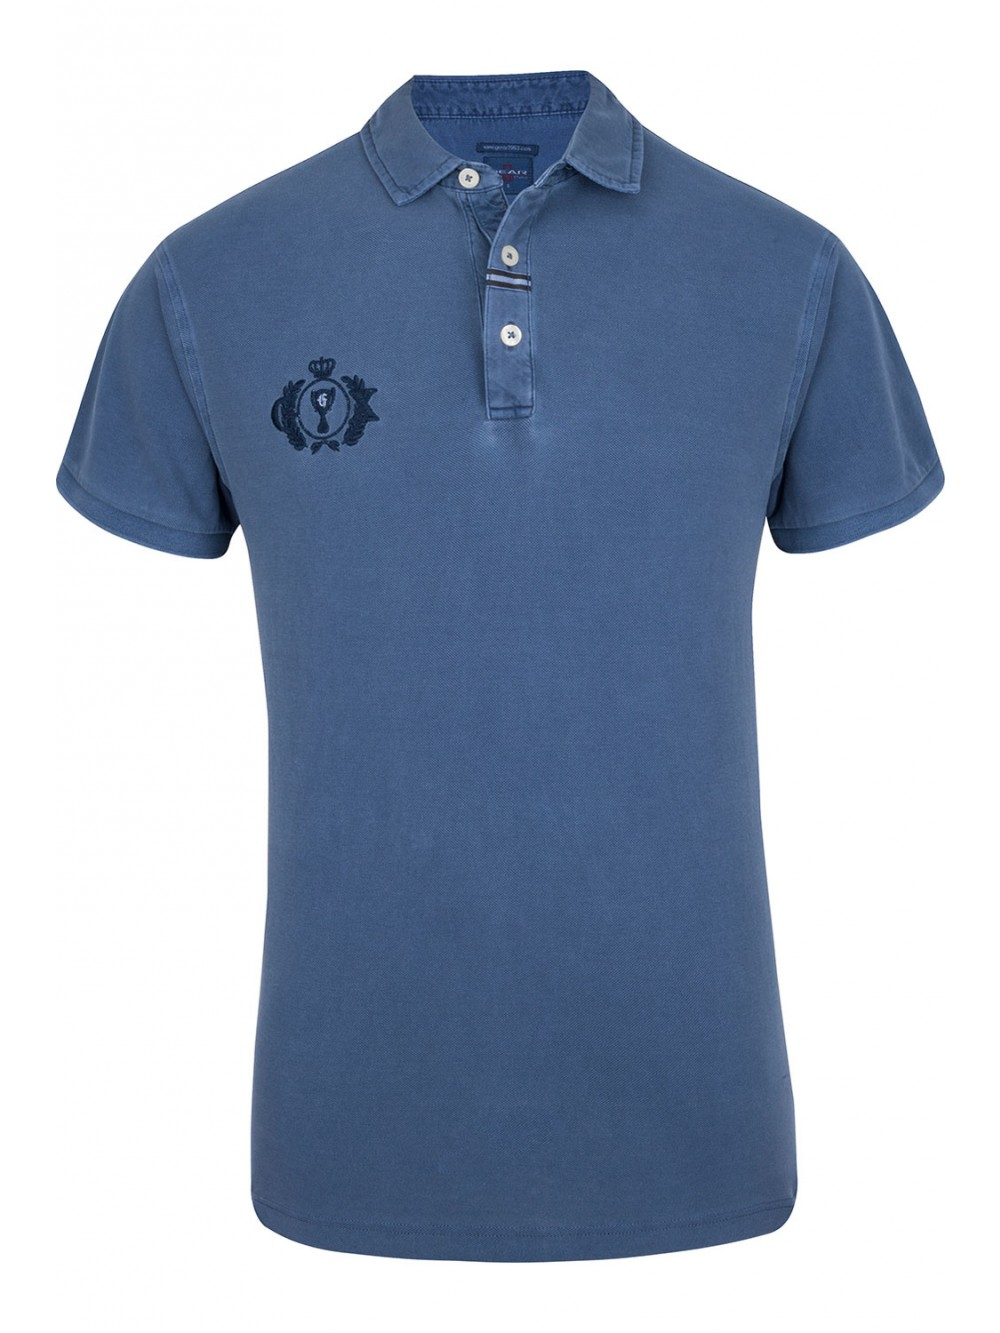 Mens VIPER Pigment Dyed Pique Polo - blue